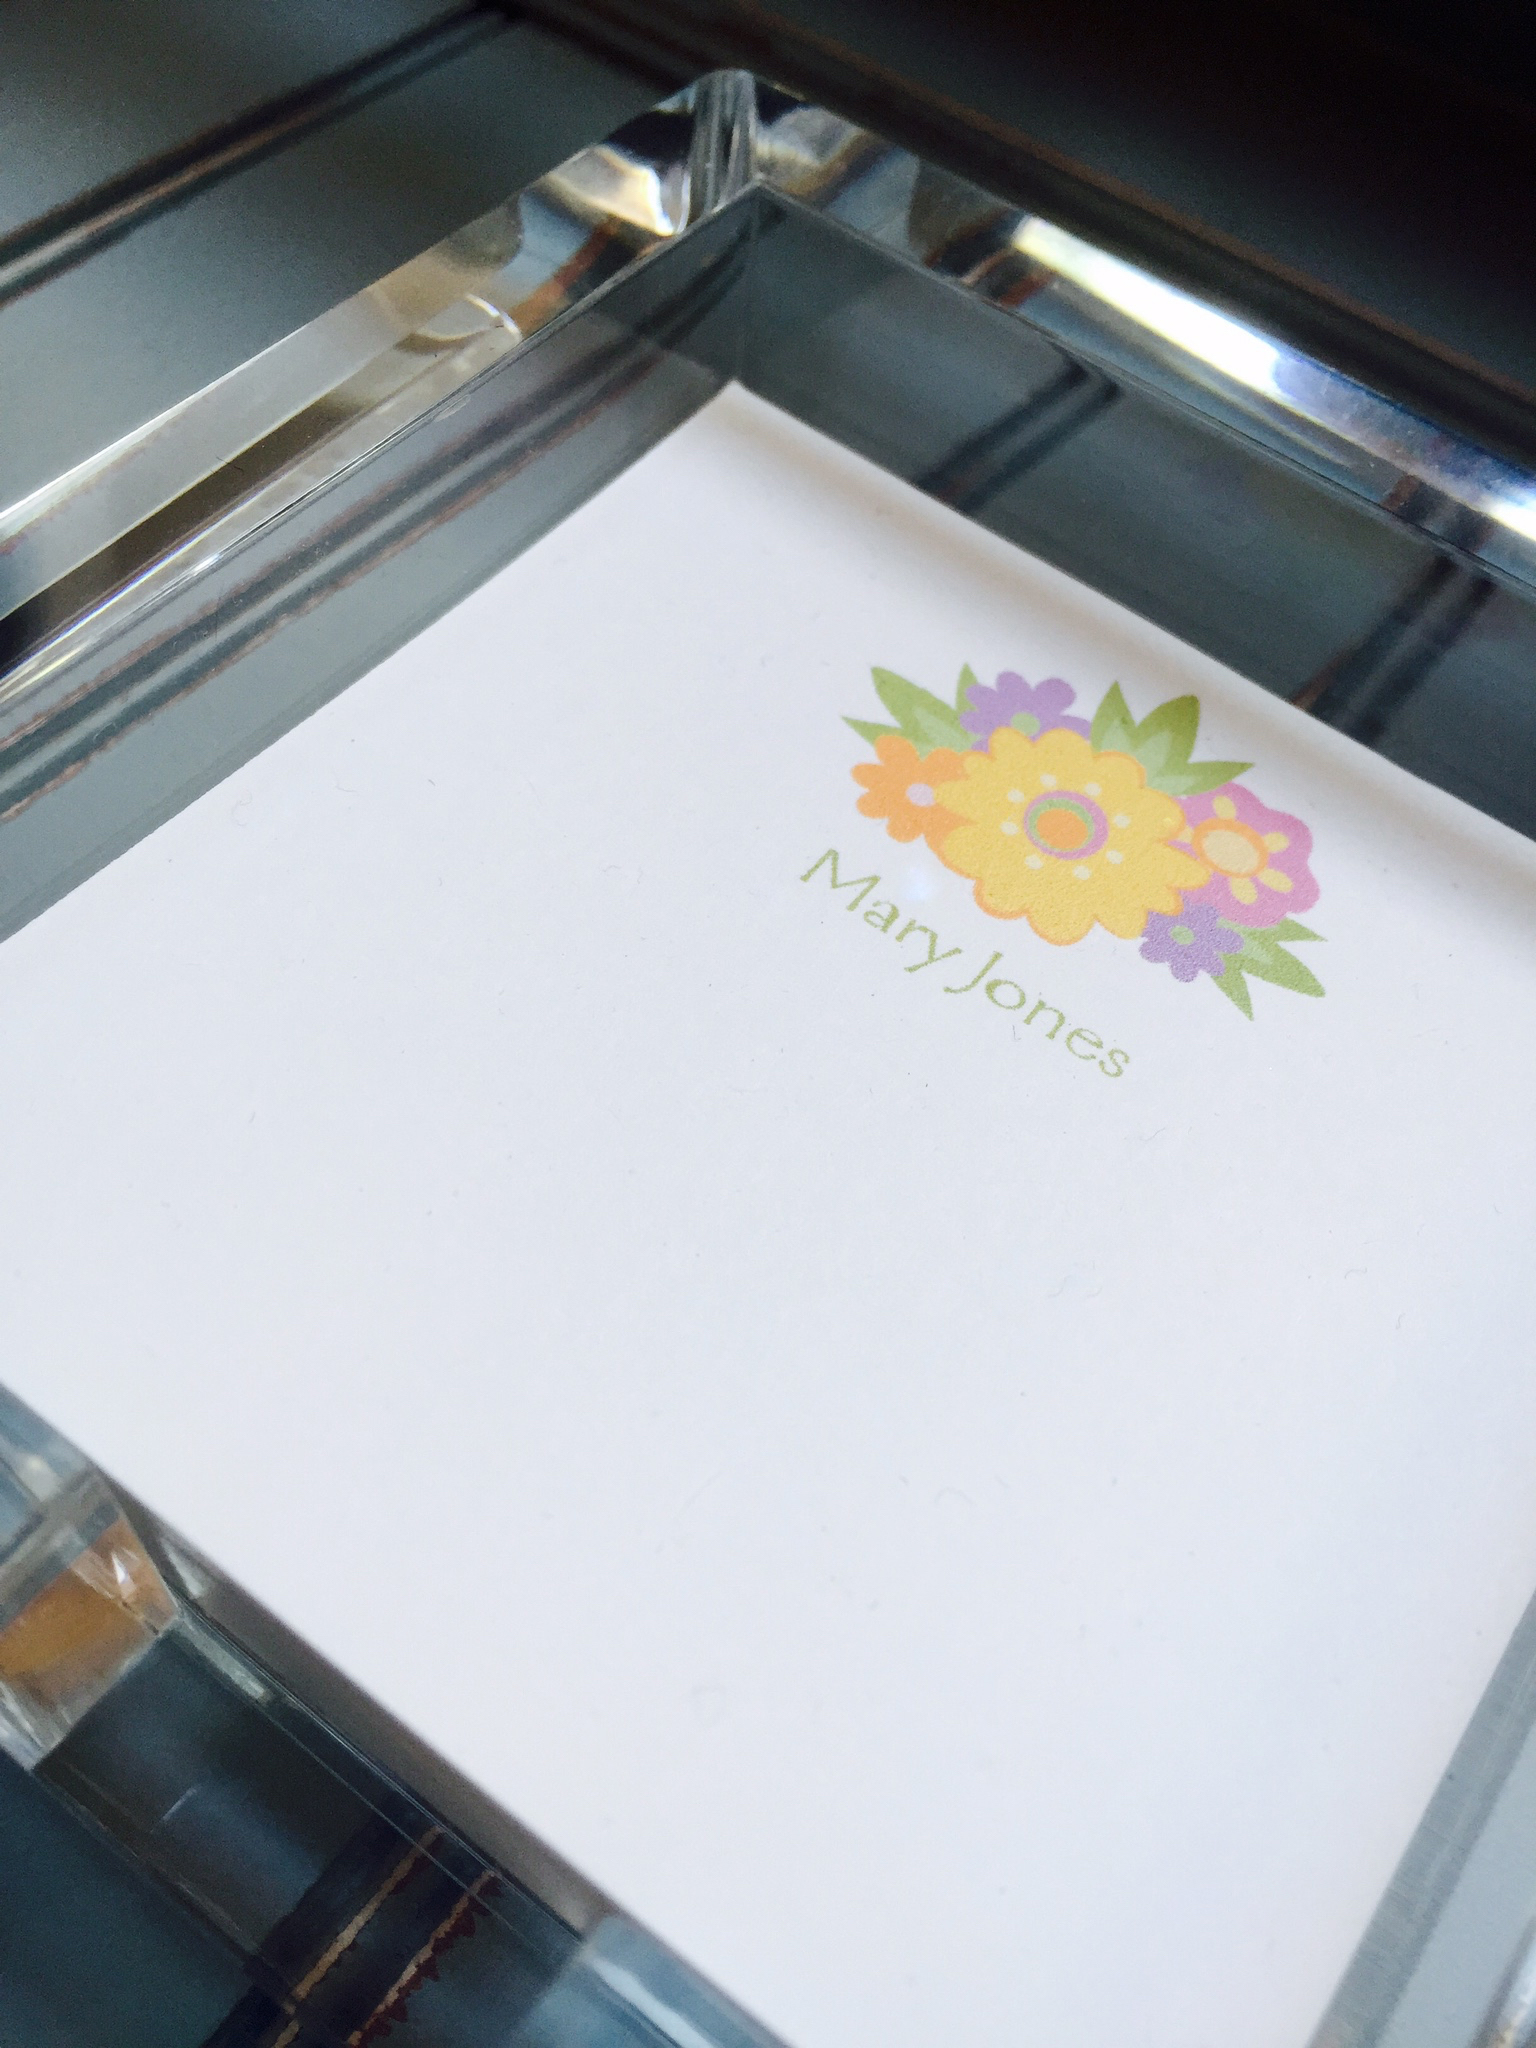 Personalized Acrylic Memo Note Pad Set